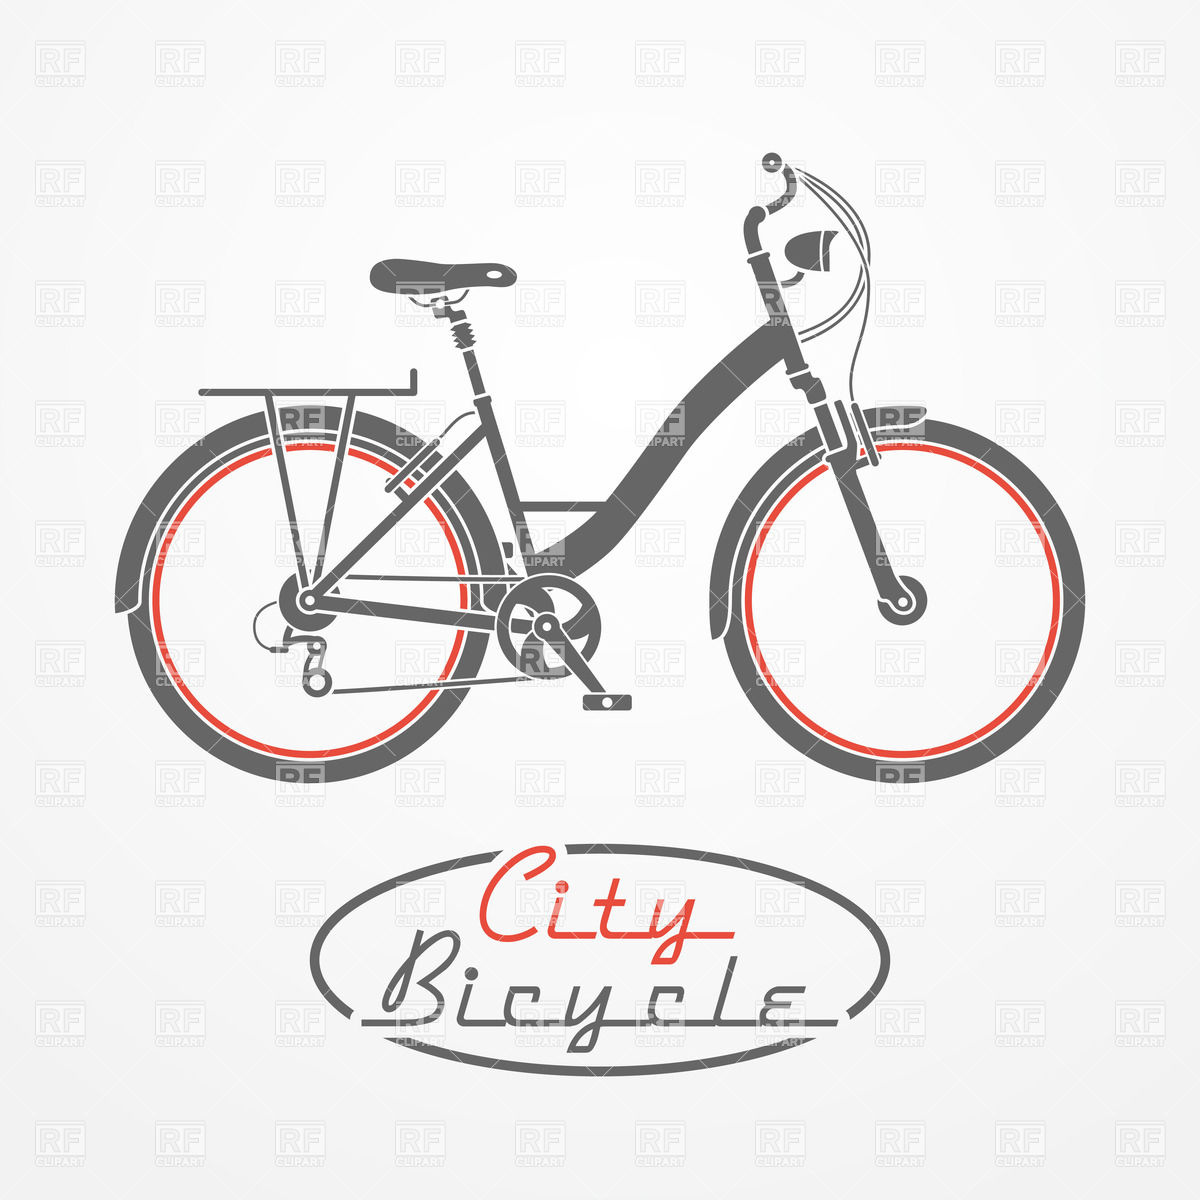 Cycle clipart antique bike. Vintage city bicycle vector clip art black and white